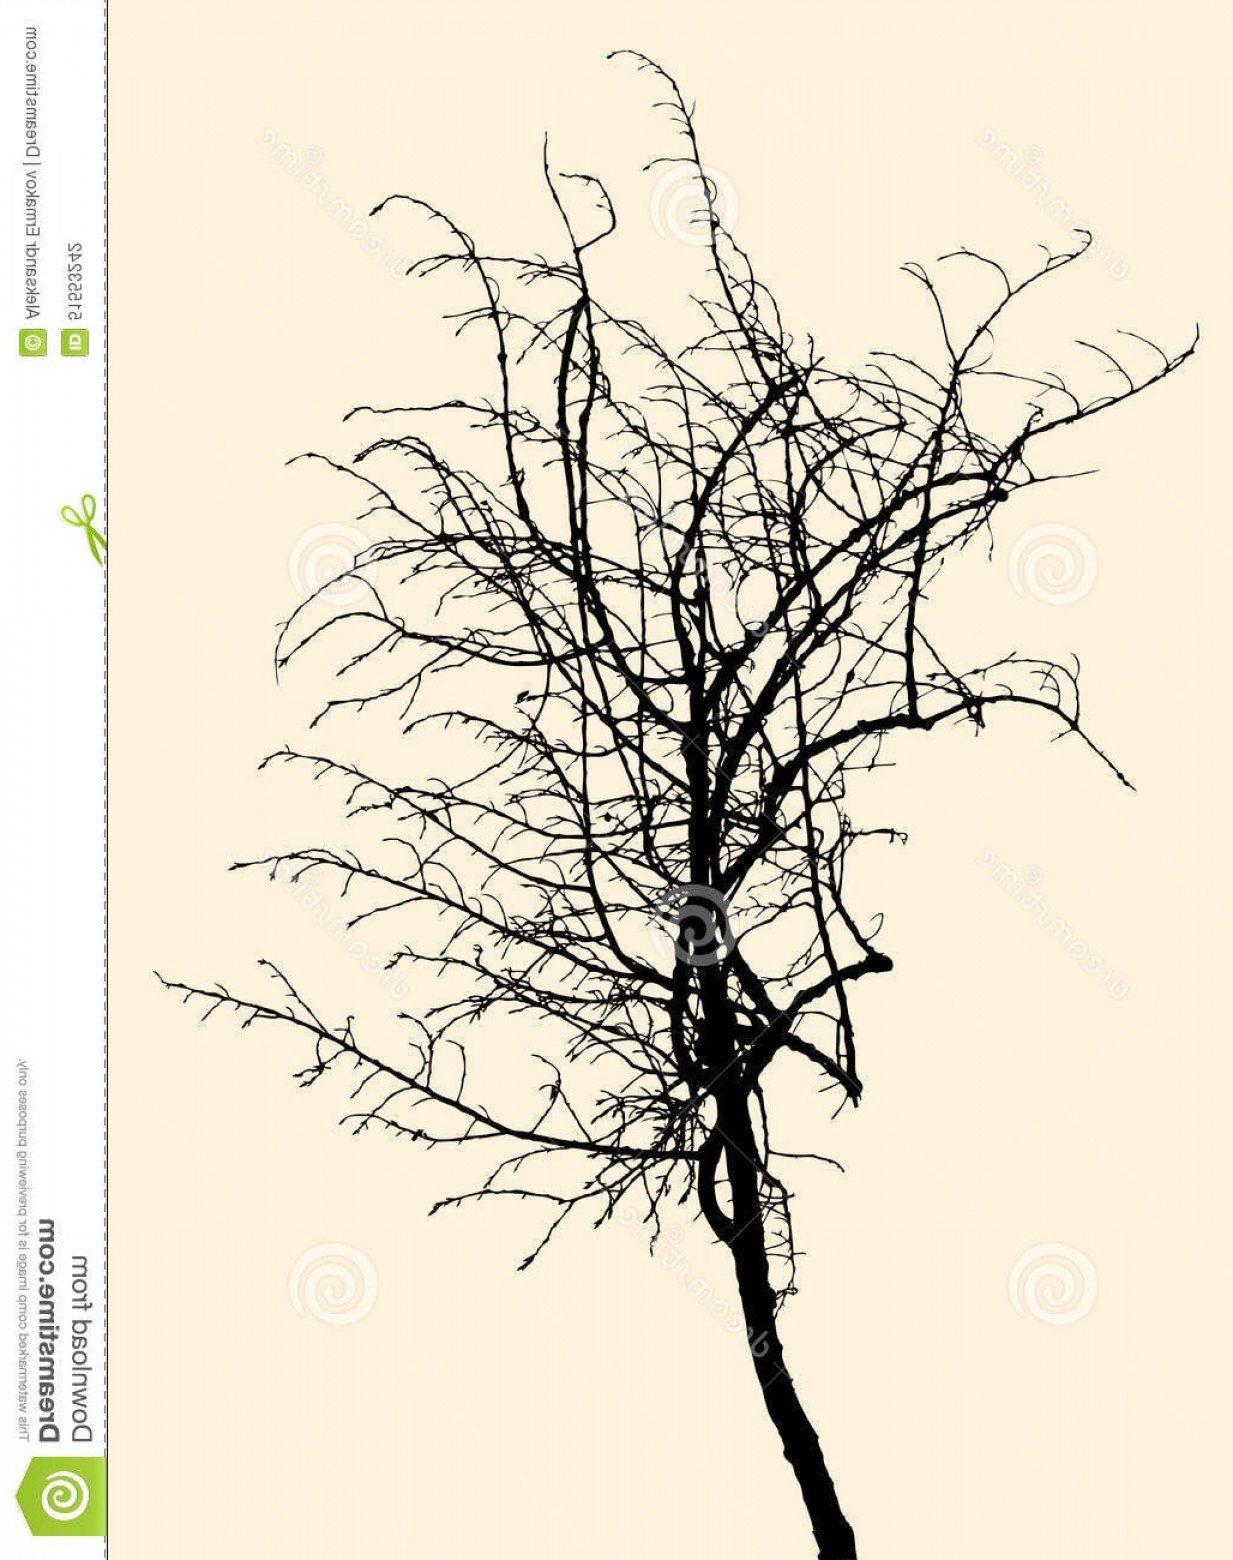 Sapling Vector Tree Silhouette Art: Stock Illustration Silhouette Small Tree Vector Image Sapling Image